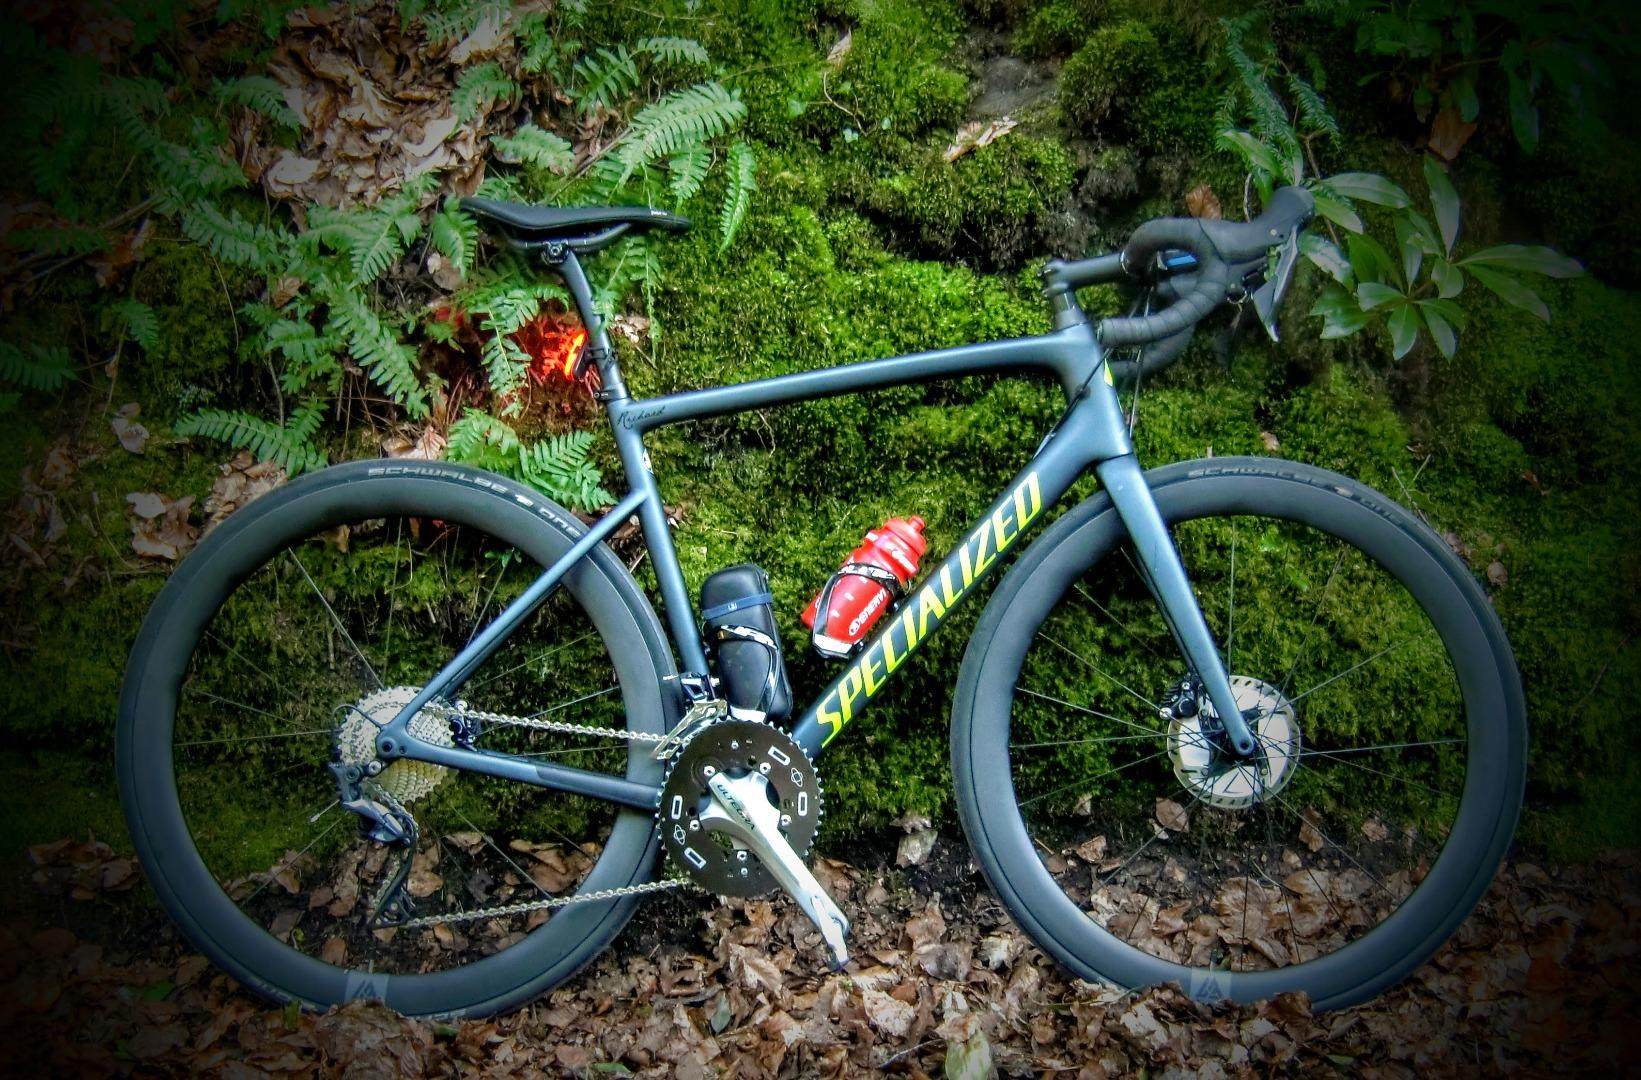 gravel-riding-solo-safe-during-covid-19-in-UK-with-specialized-road-bicycle-black-schwalbe-one-tires-LB-AR46-700c-carbon-fiber-gravel-cx-rims